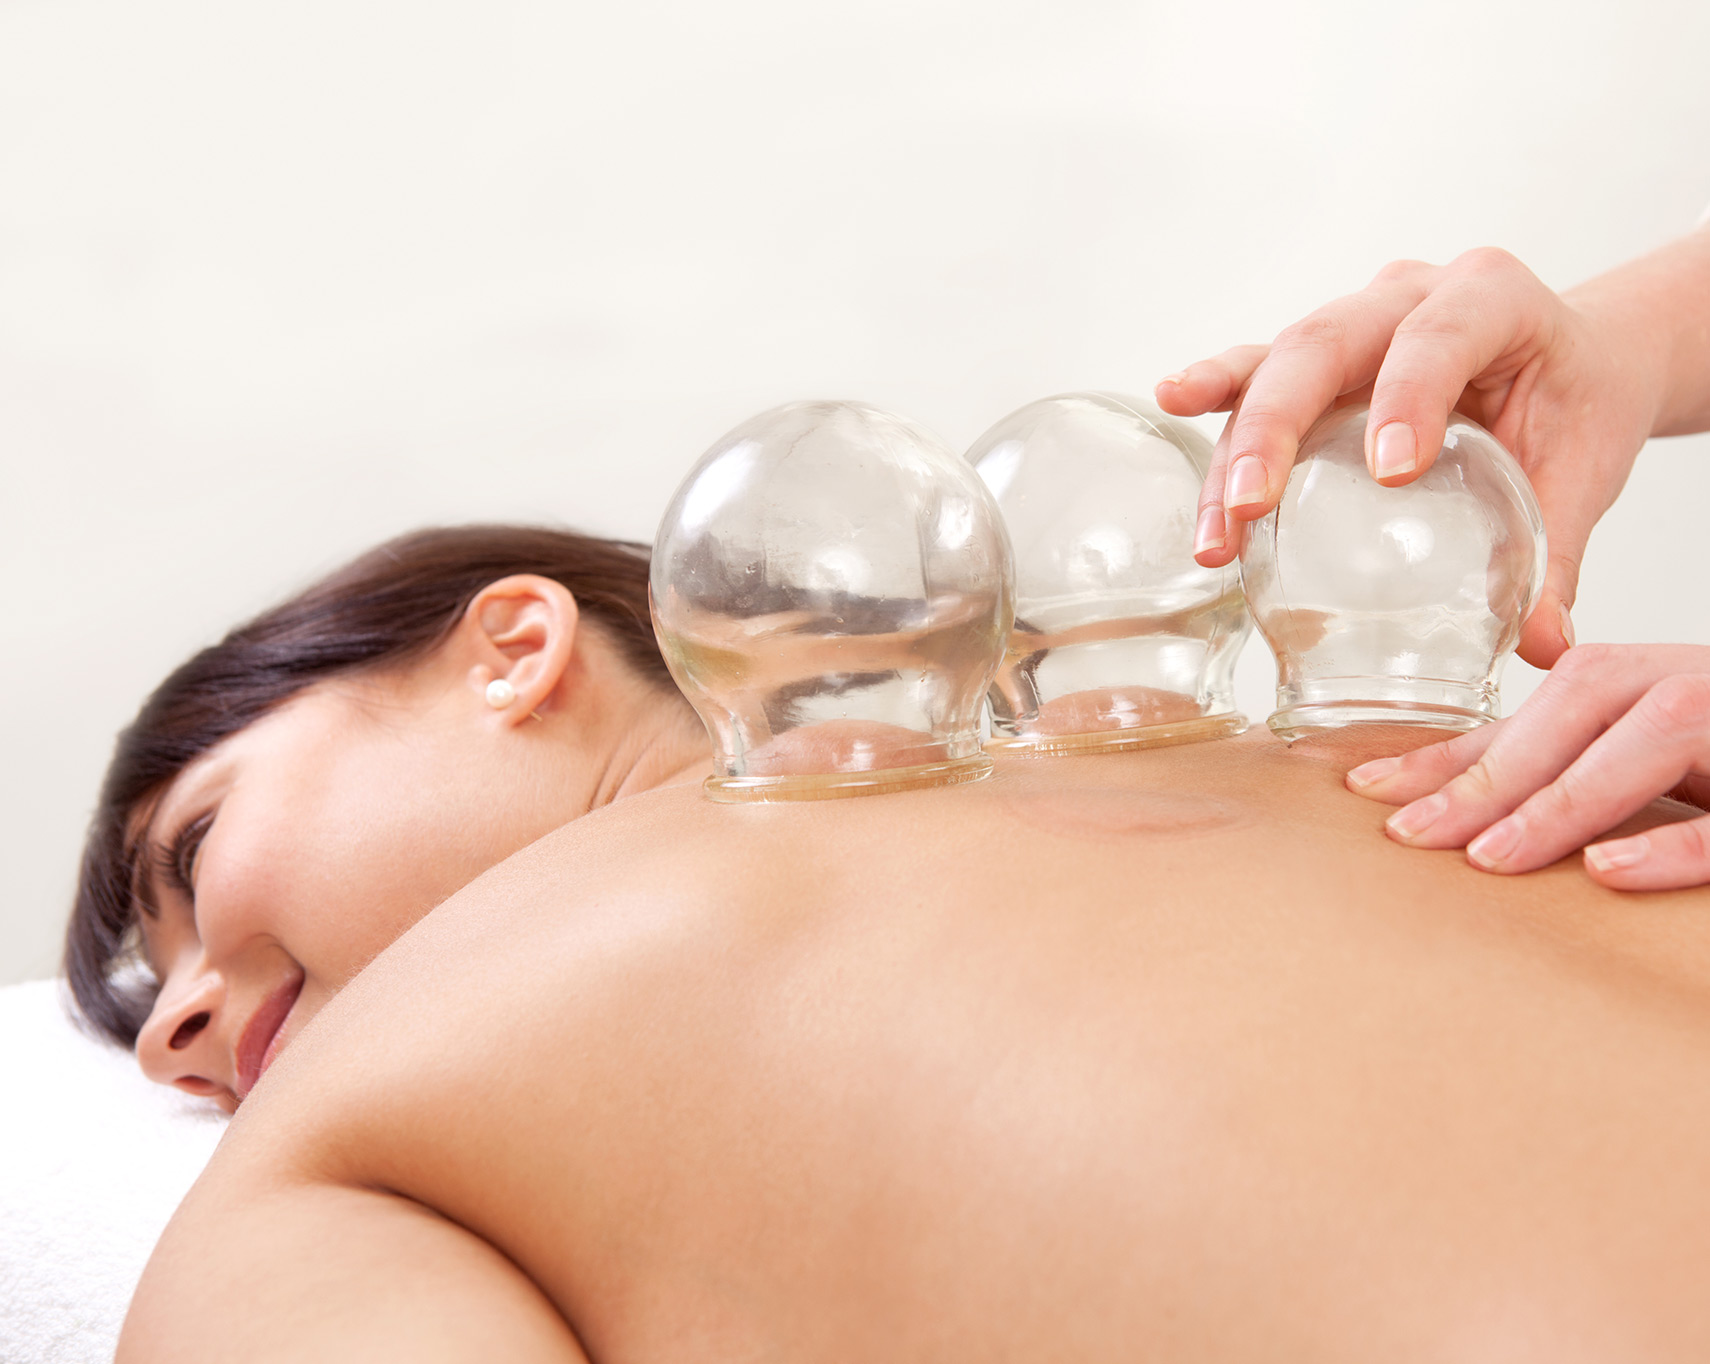 cupping at Calgary Healing Acupuncture clinic